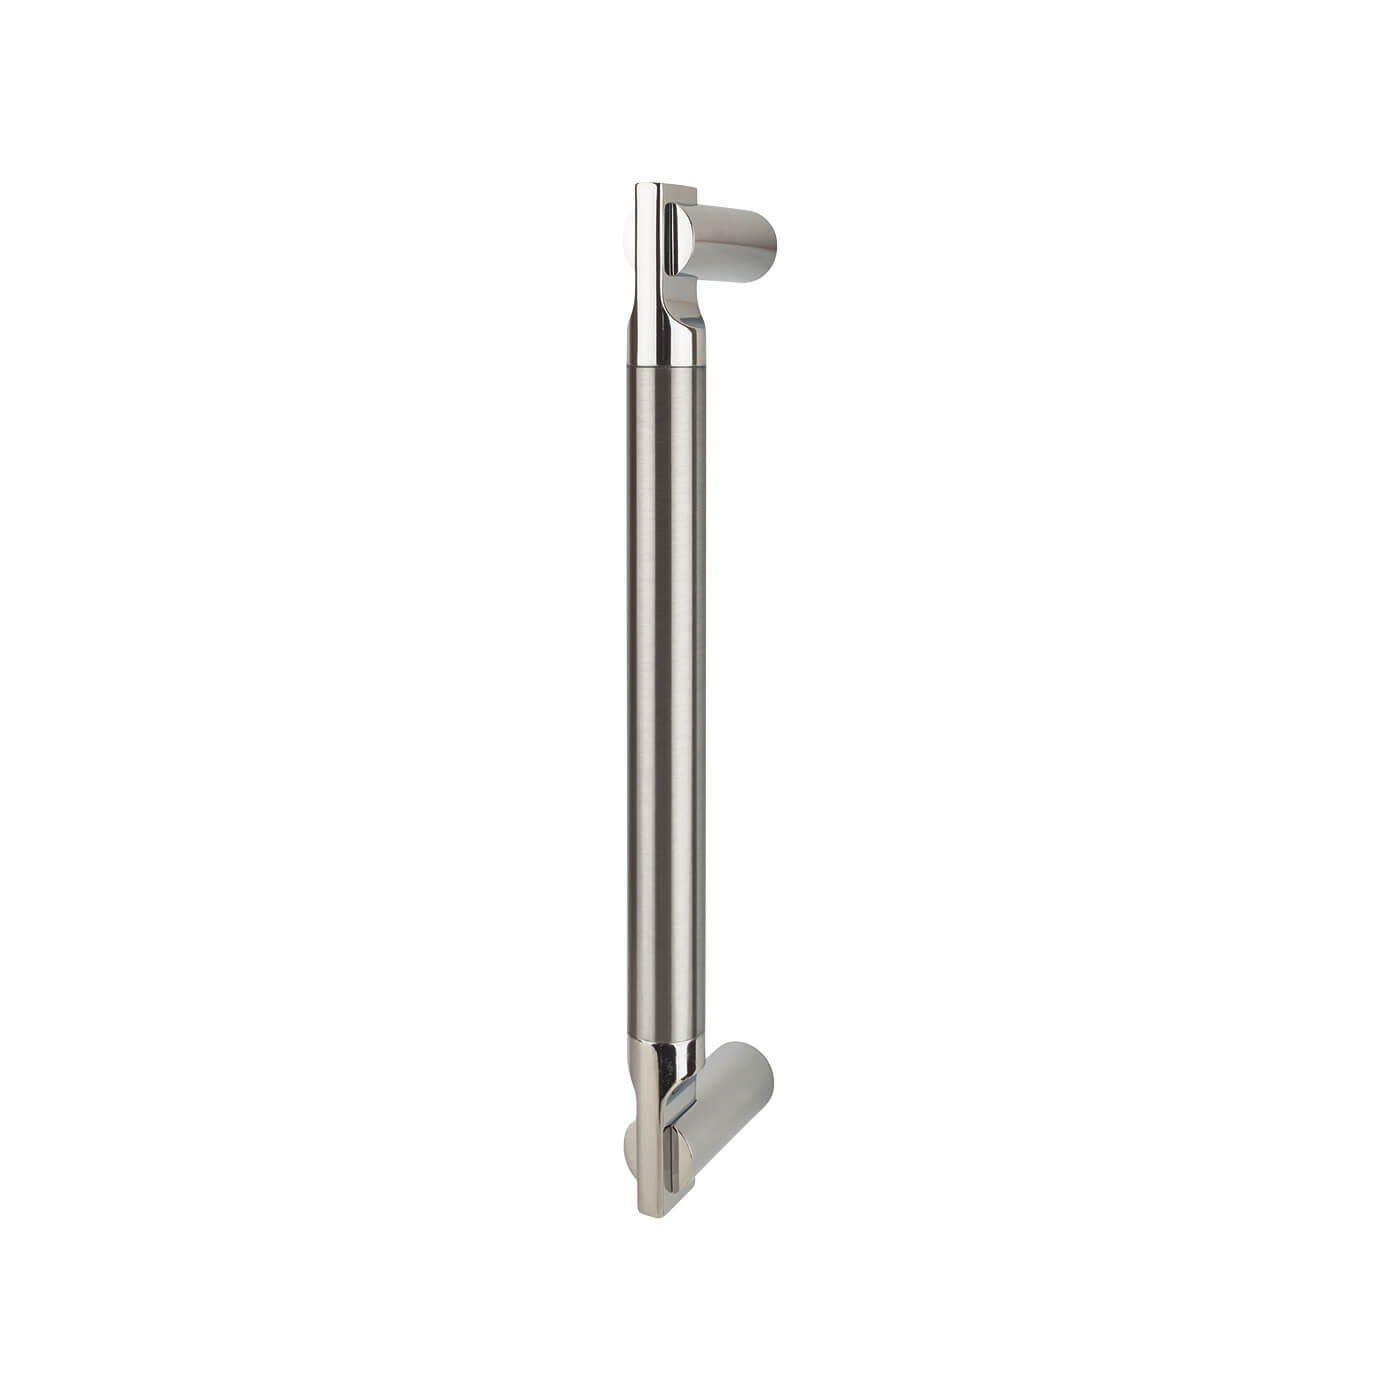 Serozzetta Azul Pull Handle 252 x 19mm - Polished Chrome /Satin Nickel)